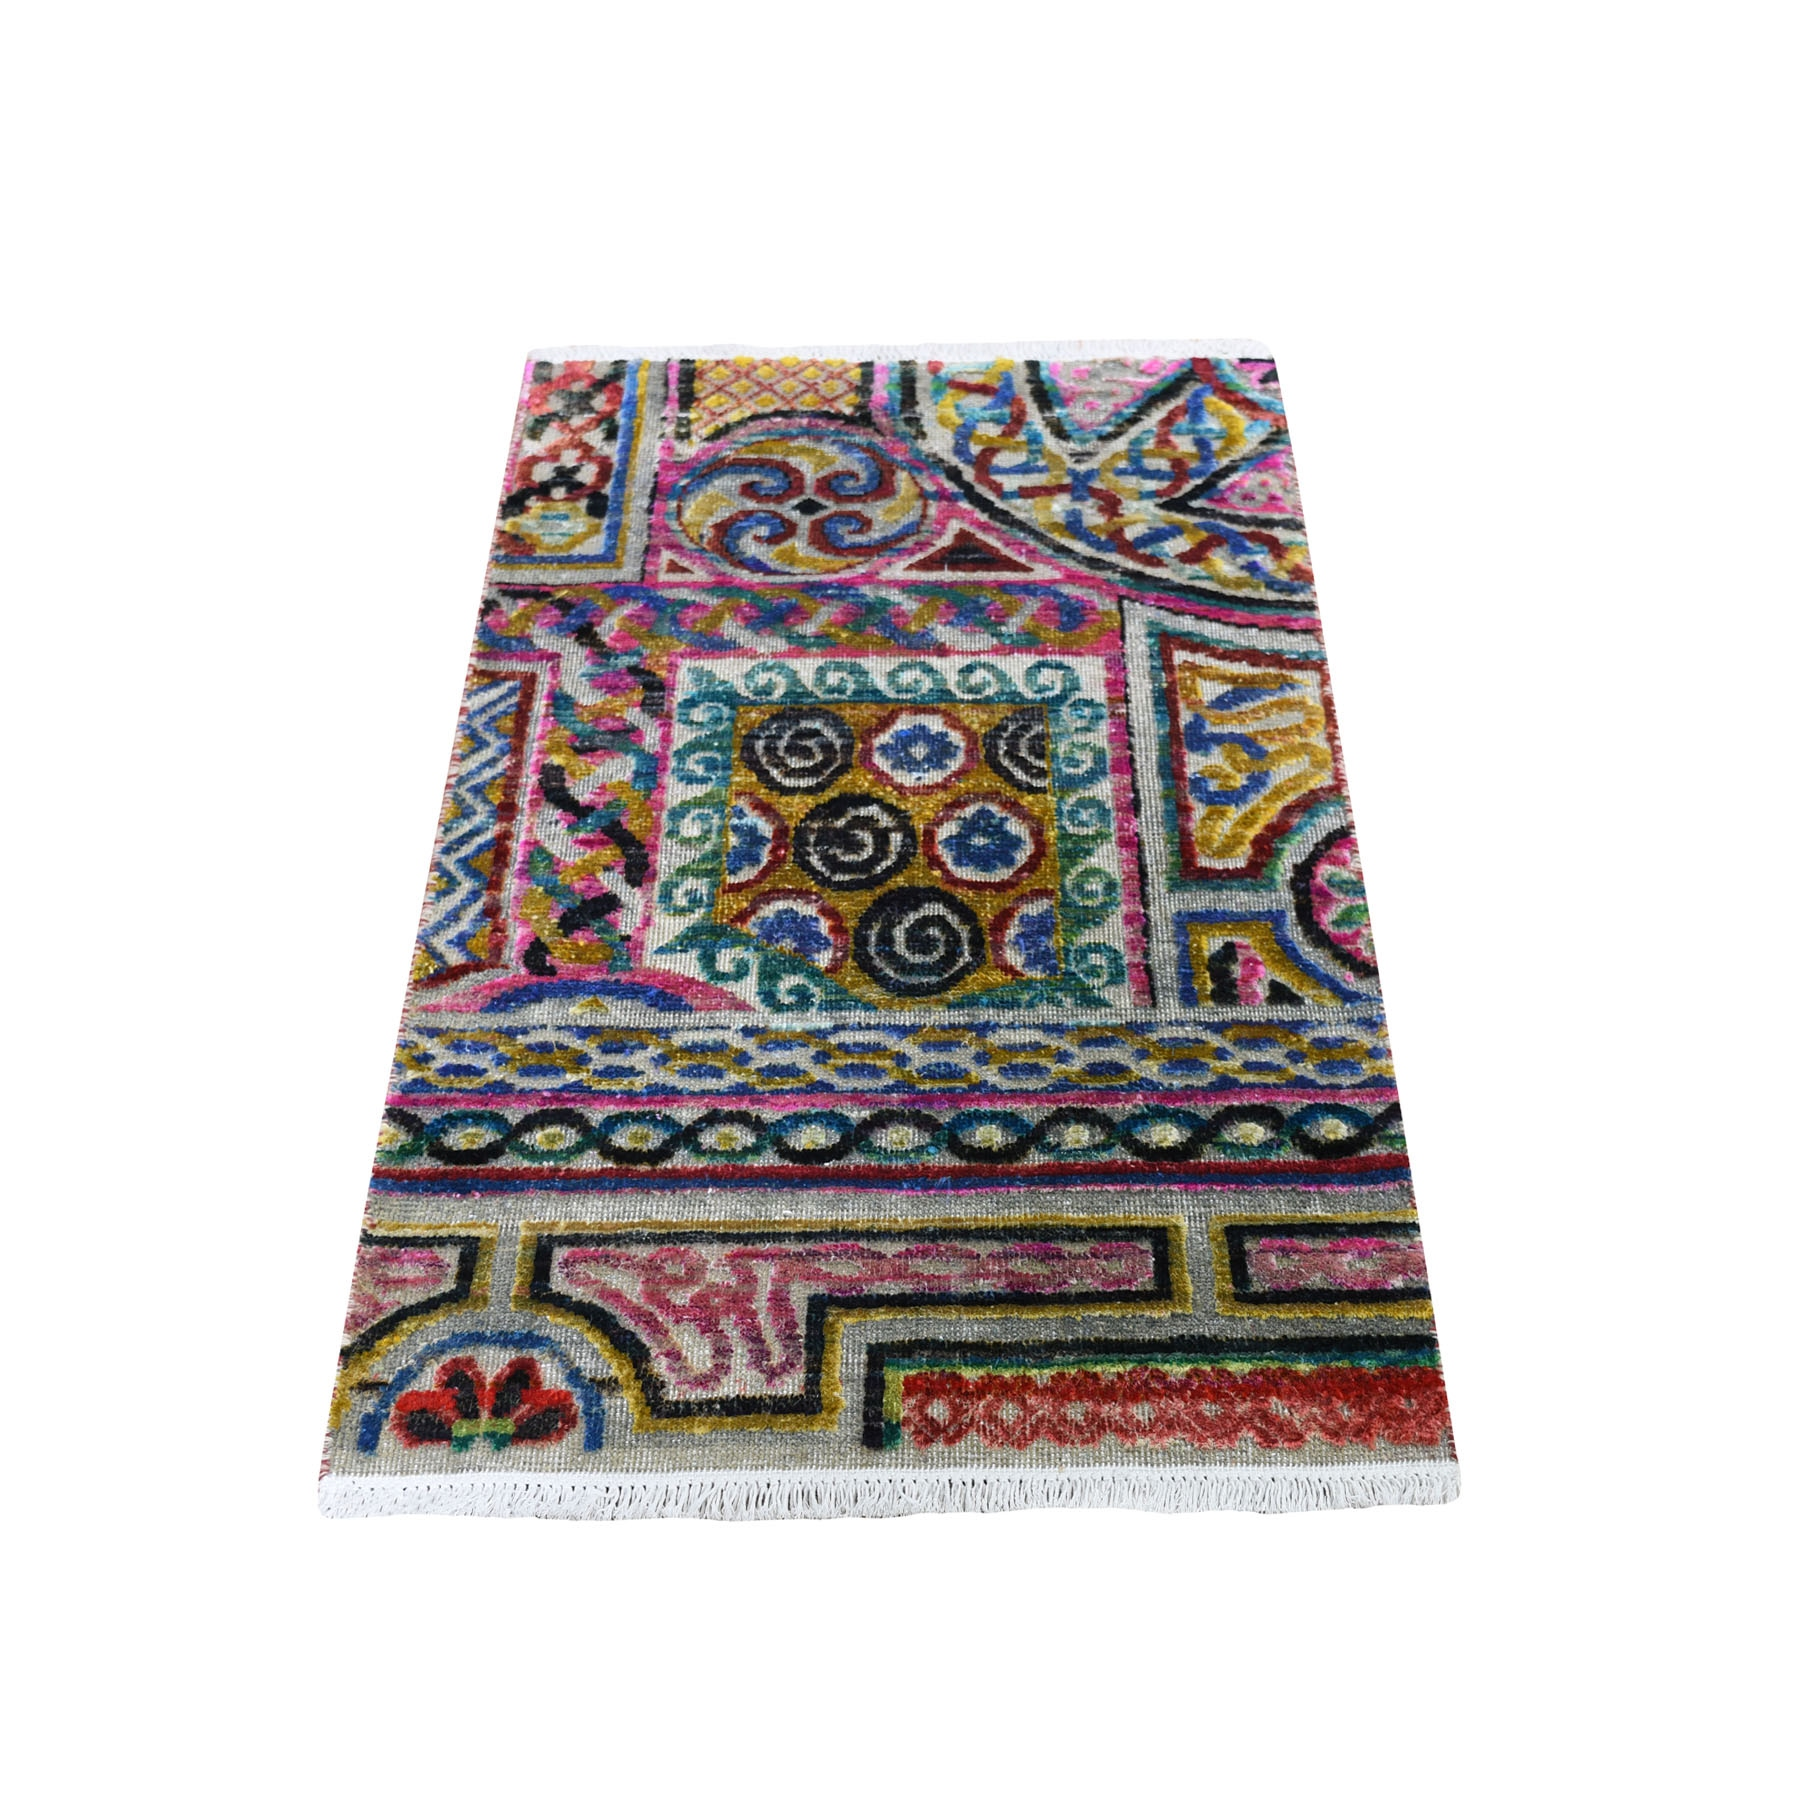 Real Silk Collection Hand Knotted Multicolored Rug No: 0193916